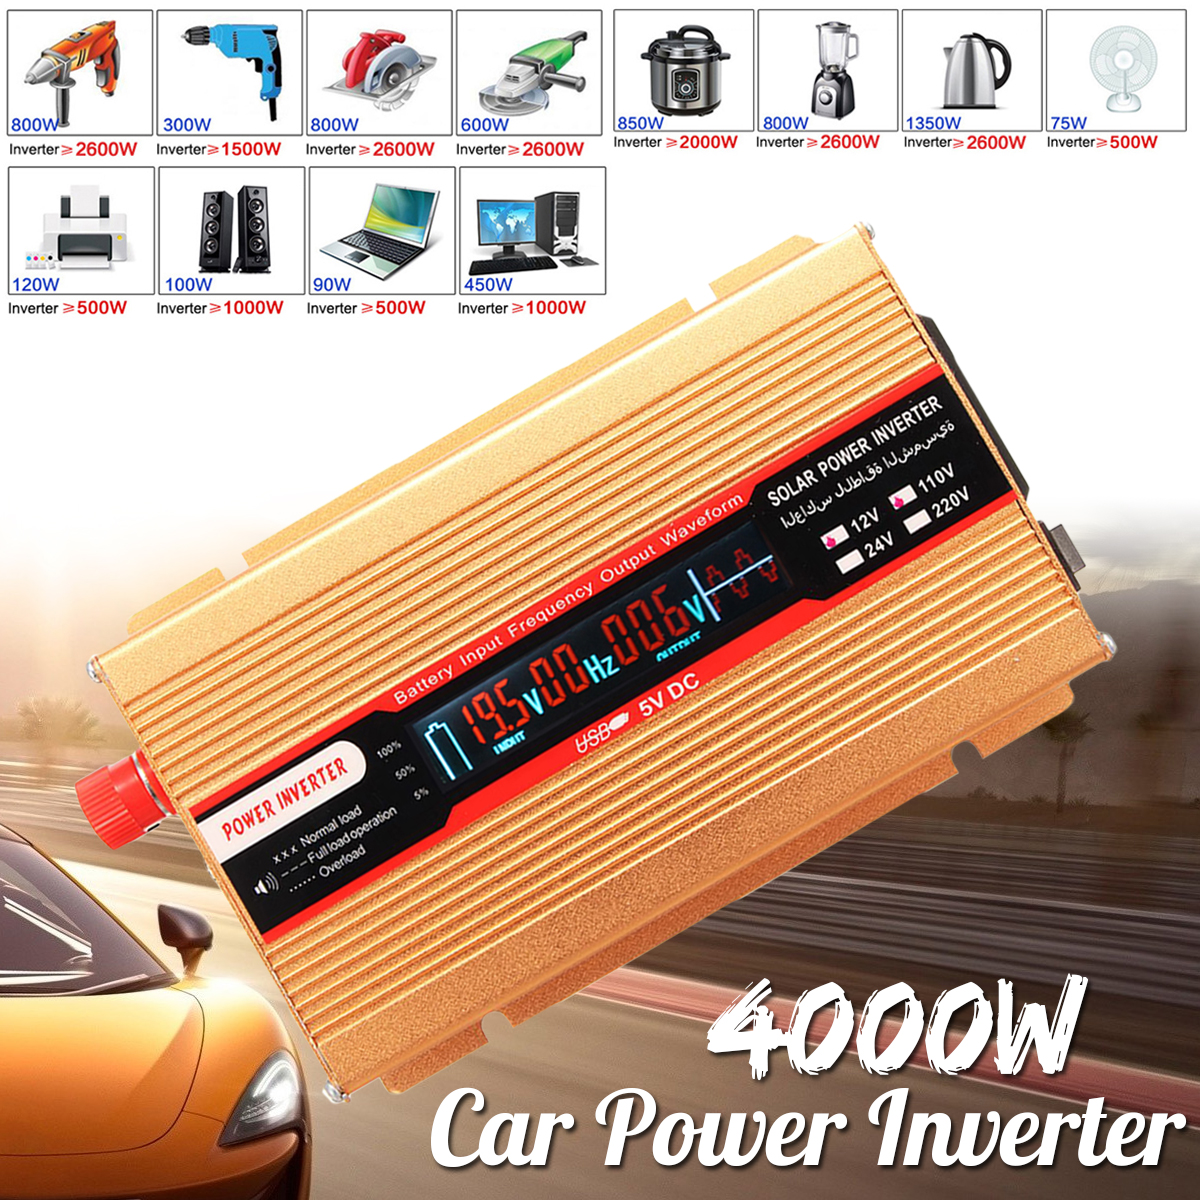 PEAK 4000W Car Power Inverter 12/24V To AC 220/110V Voltage Transformer USB Modified Sine Wave Converter for Various Appliances peak 4000w 12 24v to ac 220 110v car power inverter usb modified sine wave converter voltage transformer for various appliances